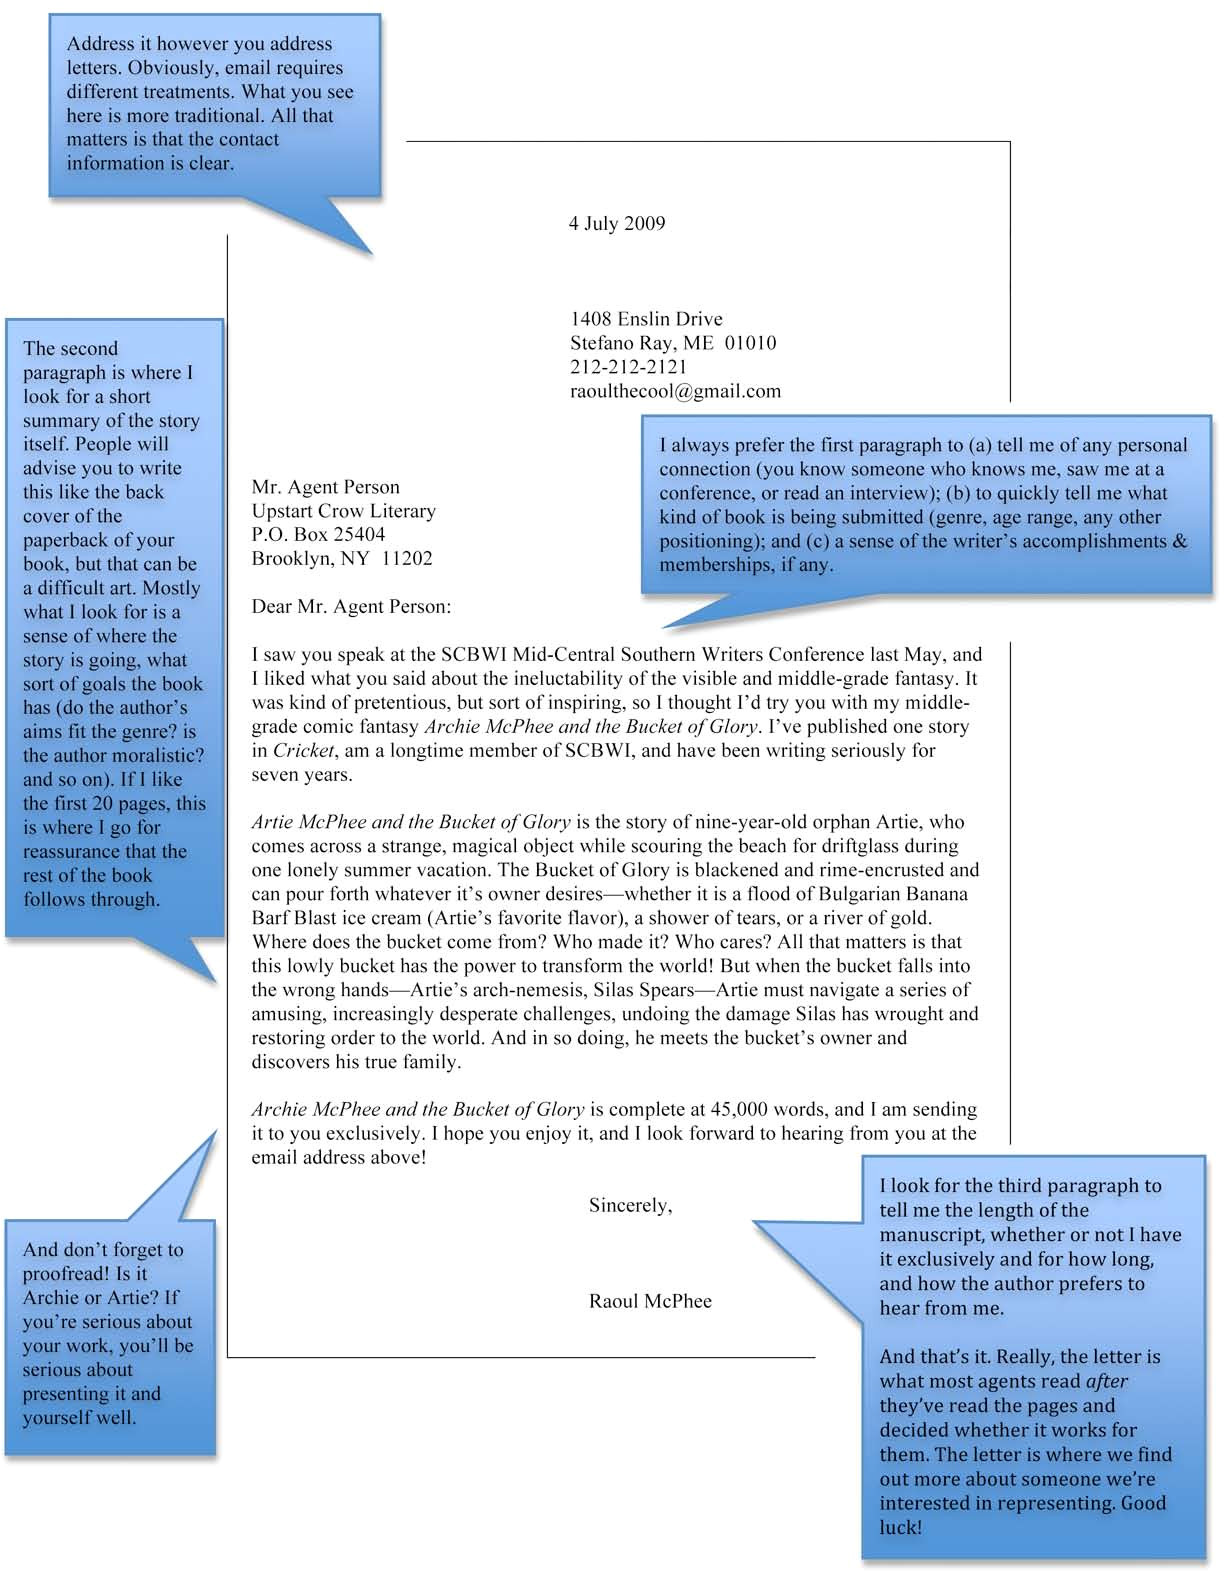 How to Write A Cover Letter for A Literary Agent How to Write A Query Letter Upstart Crow Literary